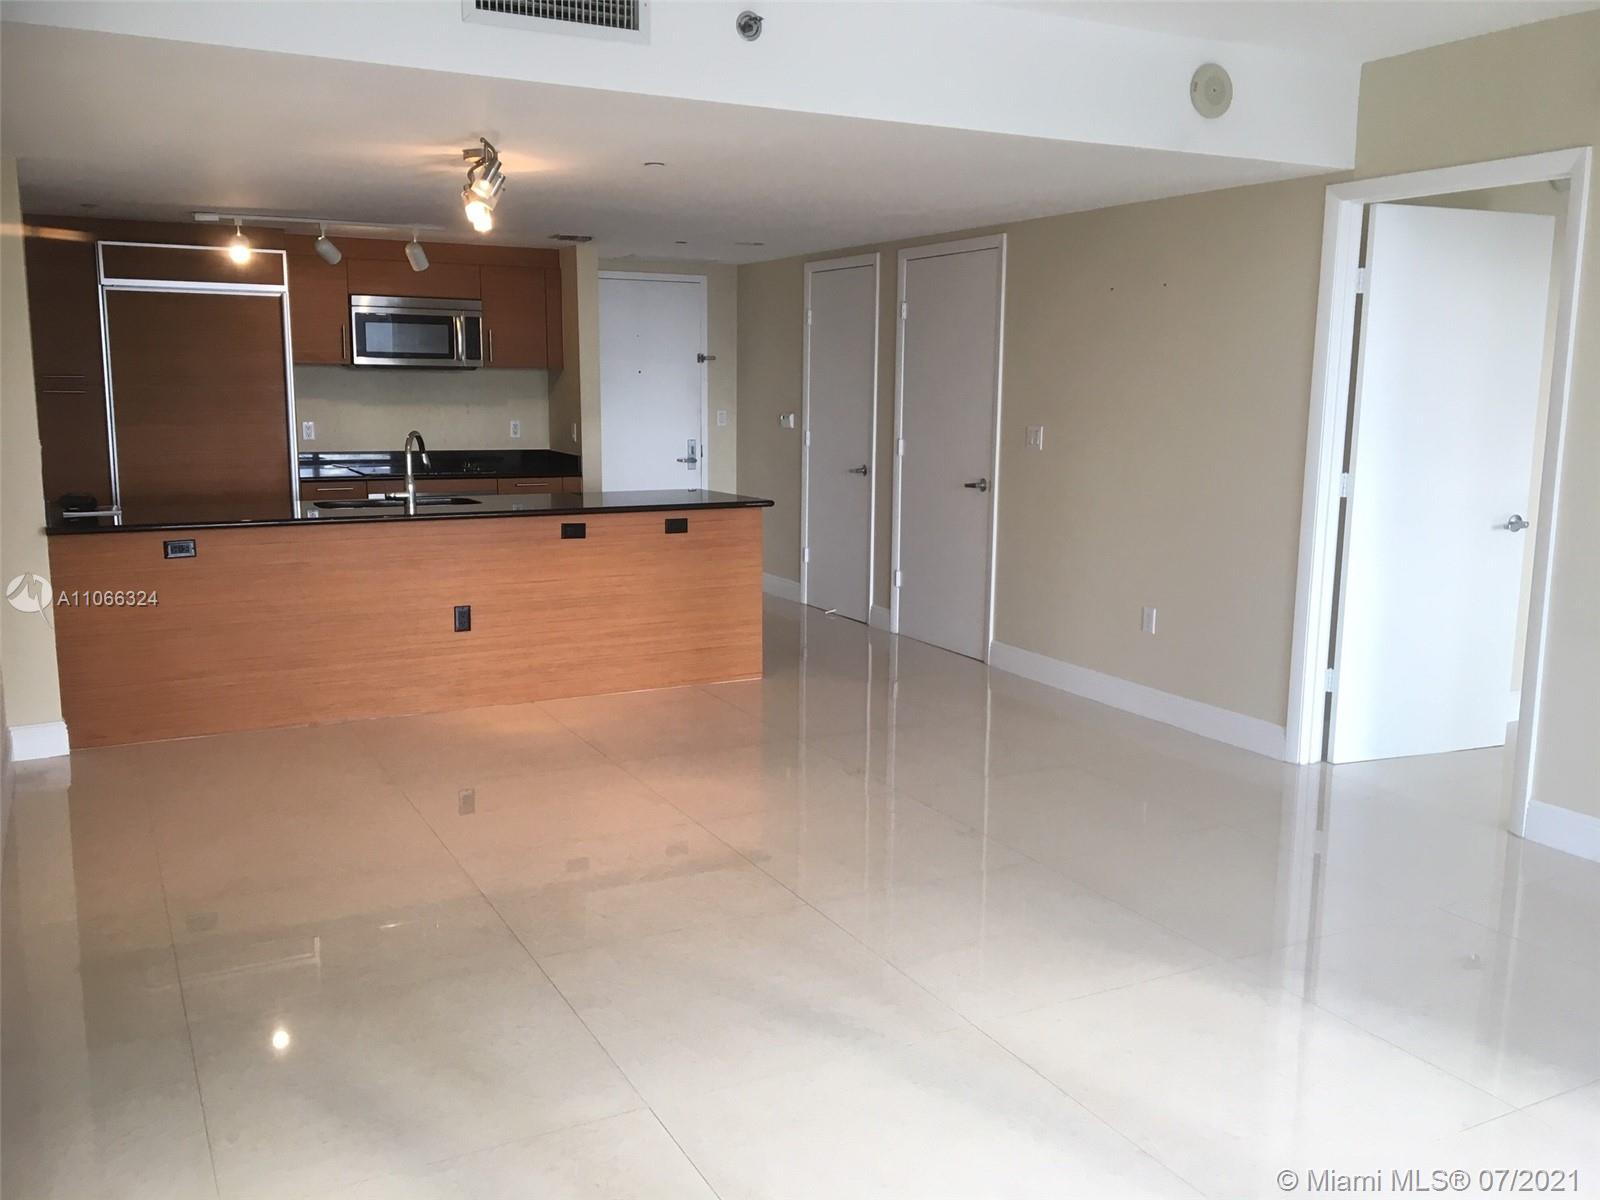 AMAZING CORNER UNIT OVERLOOKING DOWNTOWN MIAMI AND BISCAYNE BAY. GREAT AMPLE SPLIT PLAN WITH WRAPAROUND BALCONY, TILE FLOORS & WALK-IN CLOSETS. FULL AMENITIES BUILDING, GYM, VALET, POOL & SPA. CLOSE DISTANCE TO RESTAURANTS AND SHOPS. AVAILABLE AUGUST 9th, 2021.